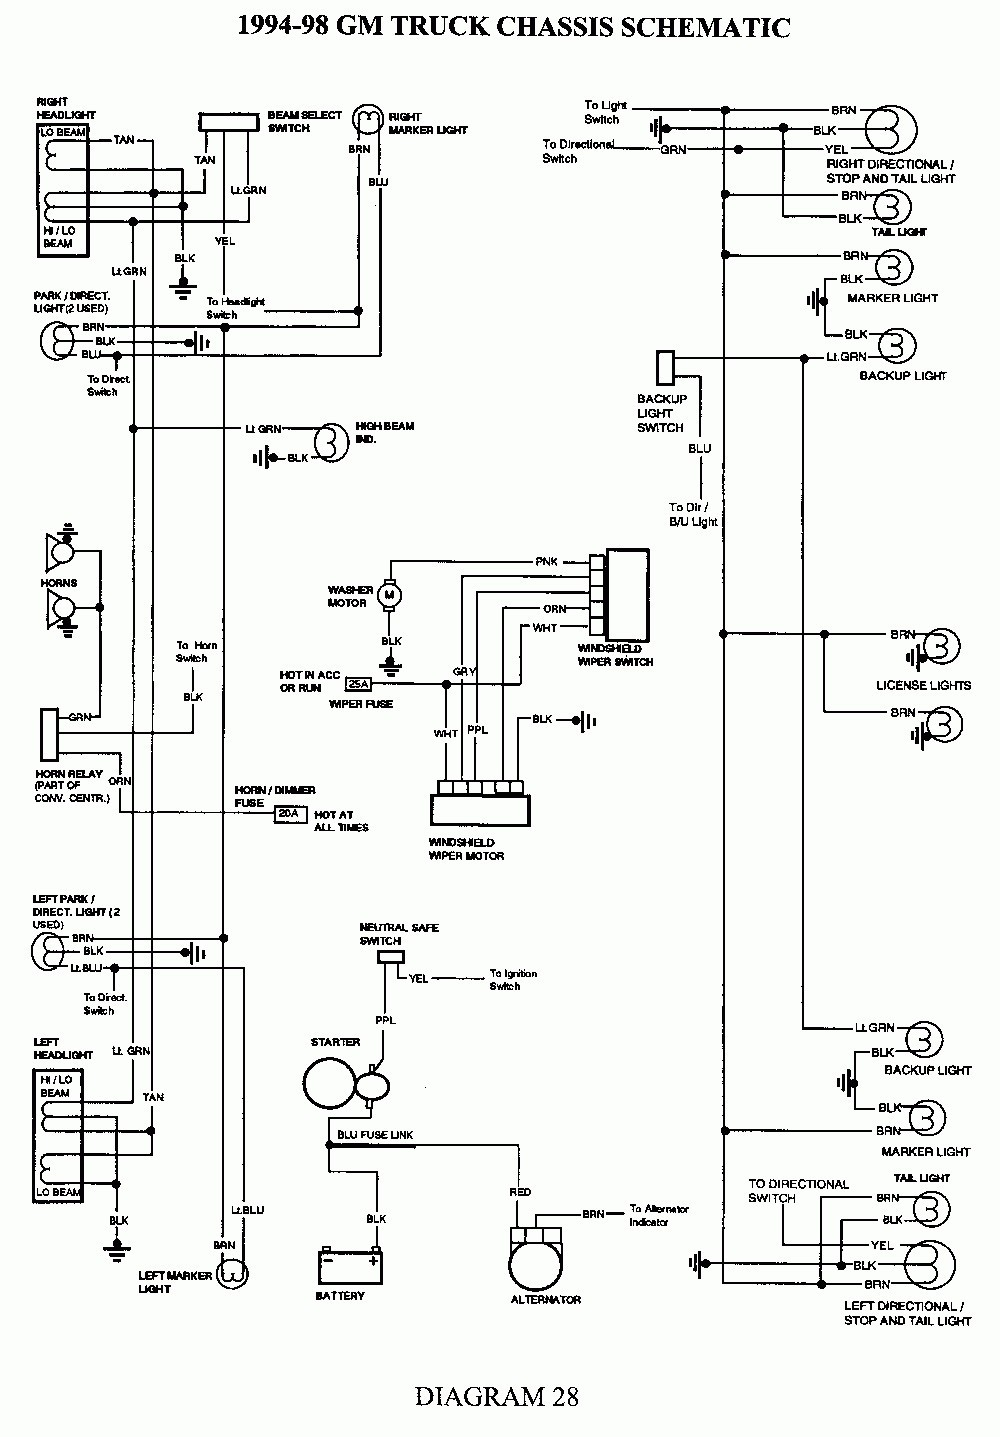 wiring diagram for 1997 chevy 1500 lzk gallery 1997 chevrolet wire rh ayseesra co wiring harness for 1997 chevy silverado wiring diagram for 1997 chevy